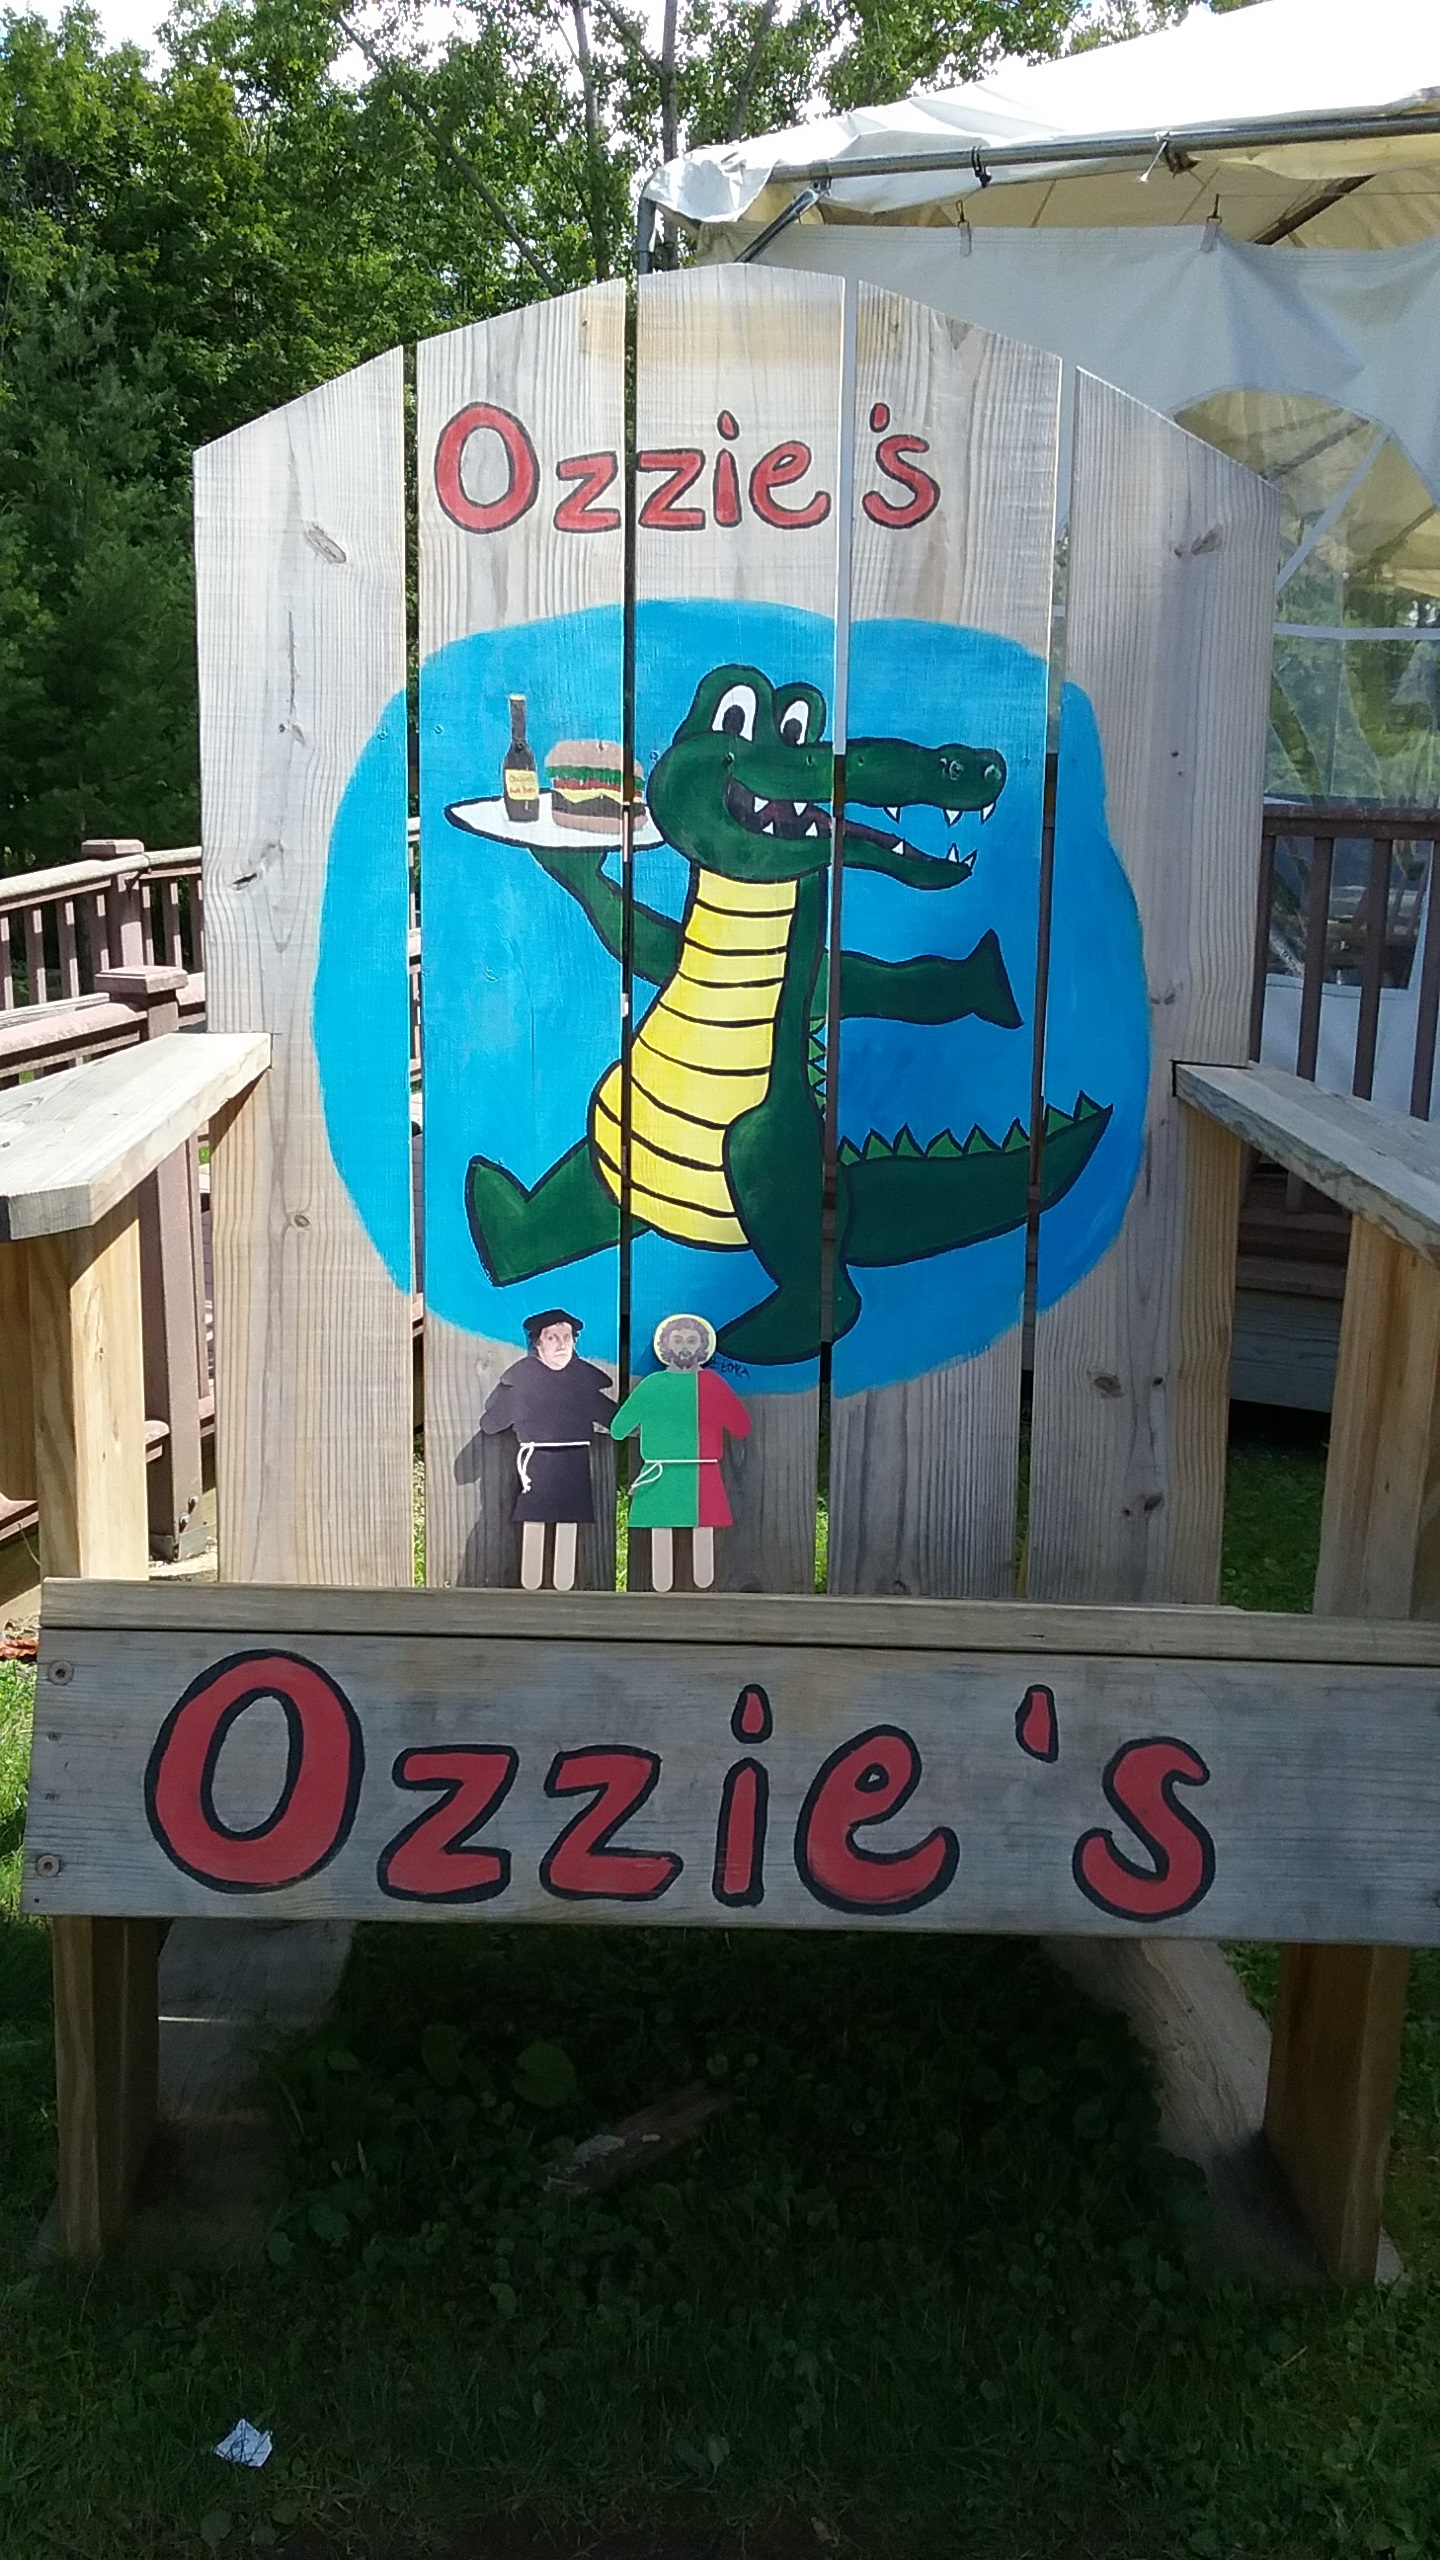 Ozzie's Restaurant, Hinsdale, MA